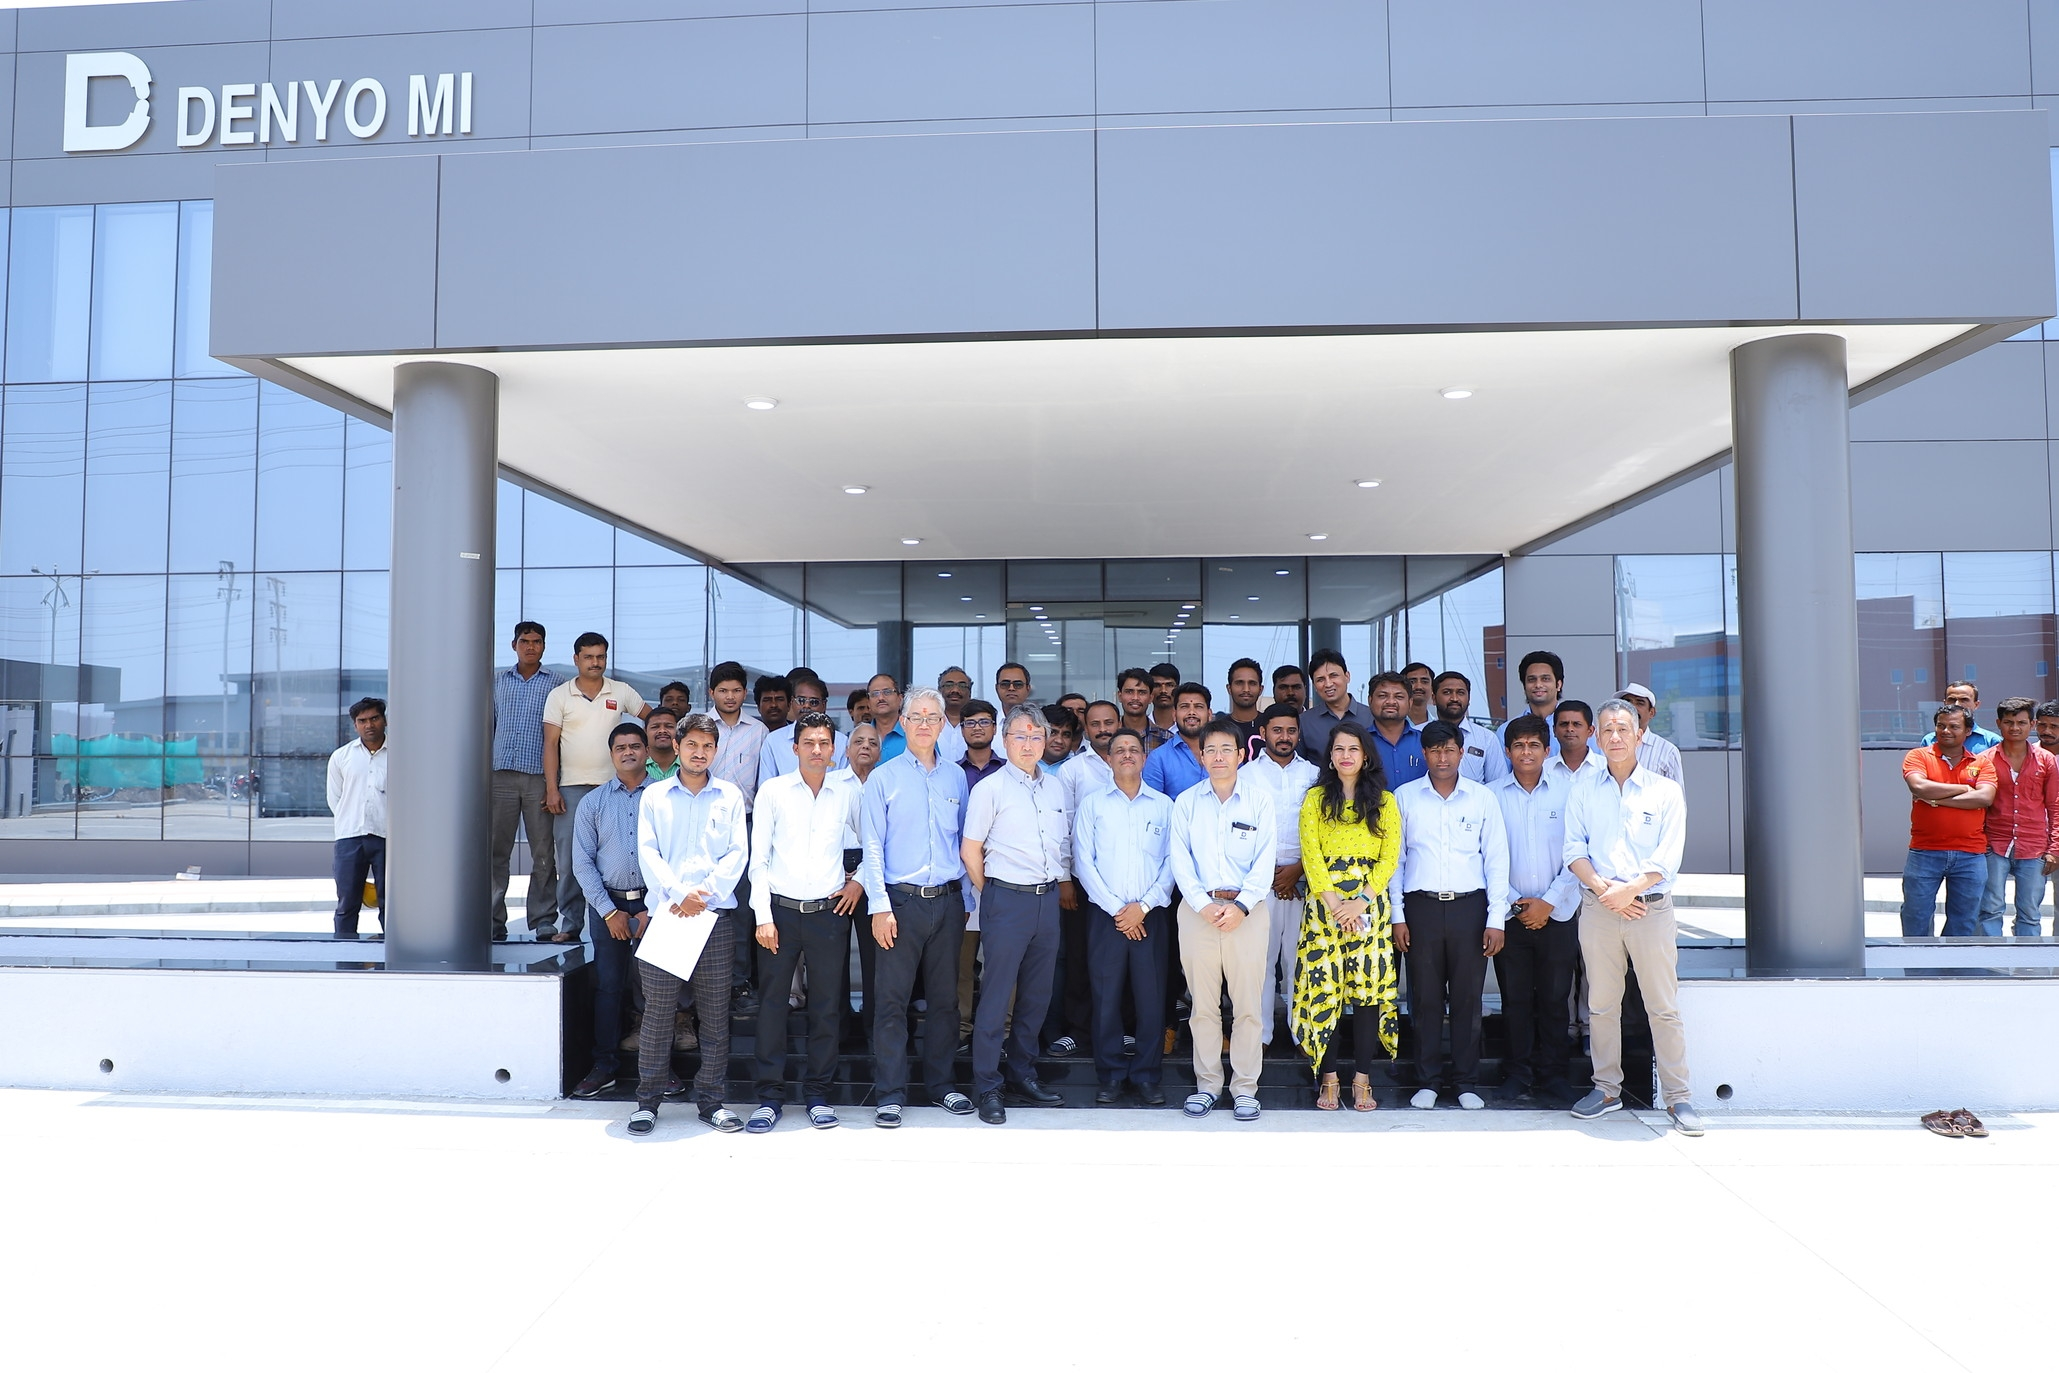 Denyo Manufacturing India (DMI) plant construction completed